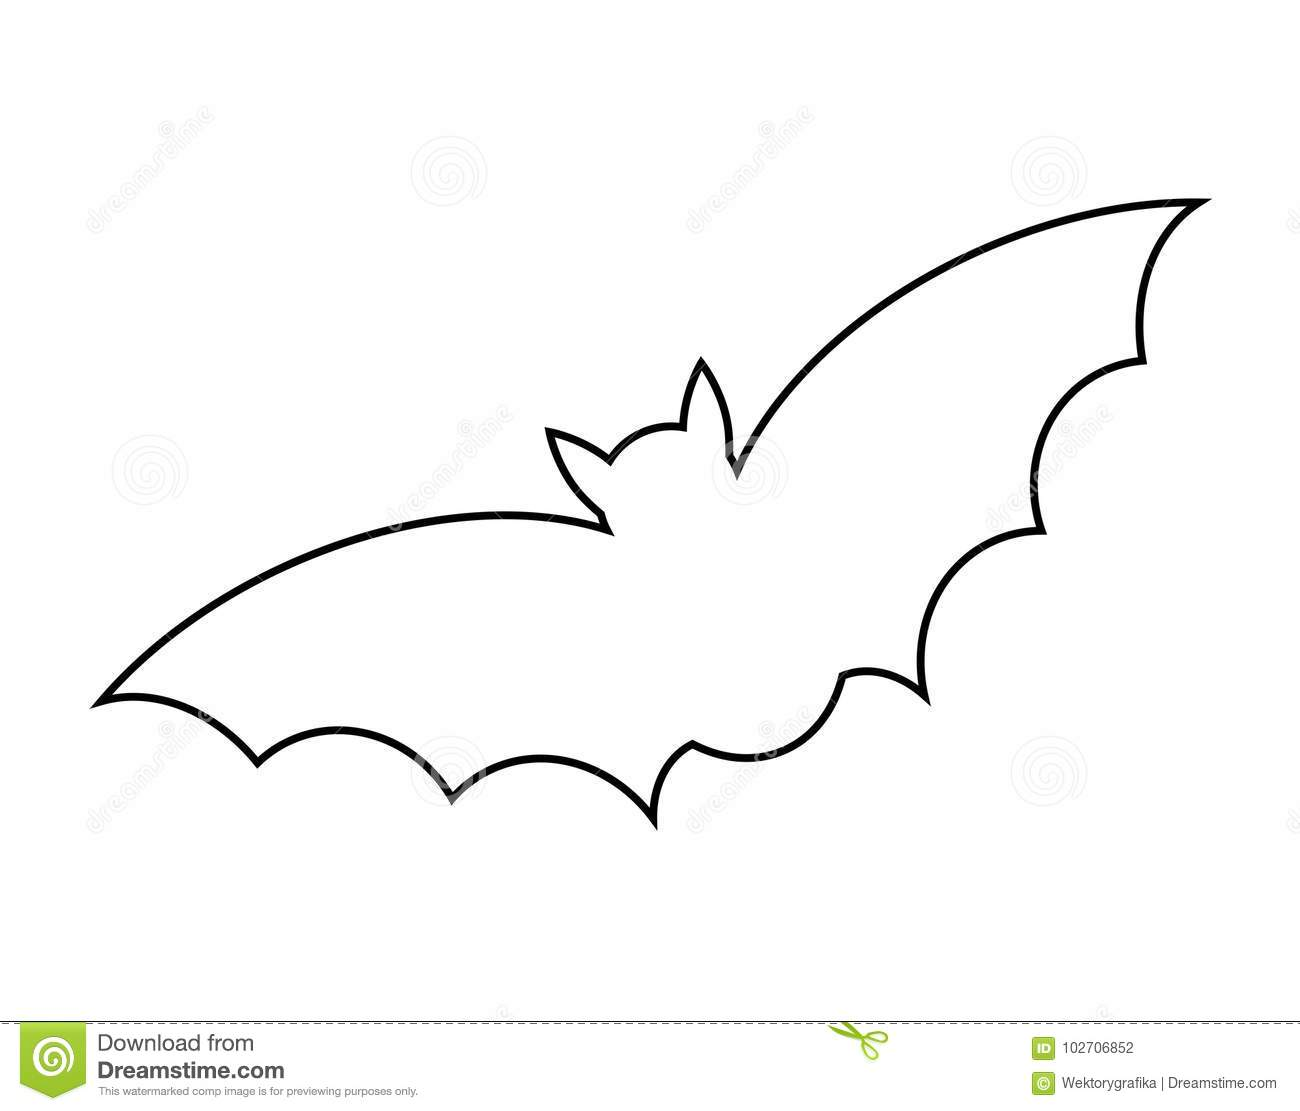 halloween bat outline vector design isolated on white backgroud icon silhouette - Bat Outline